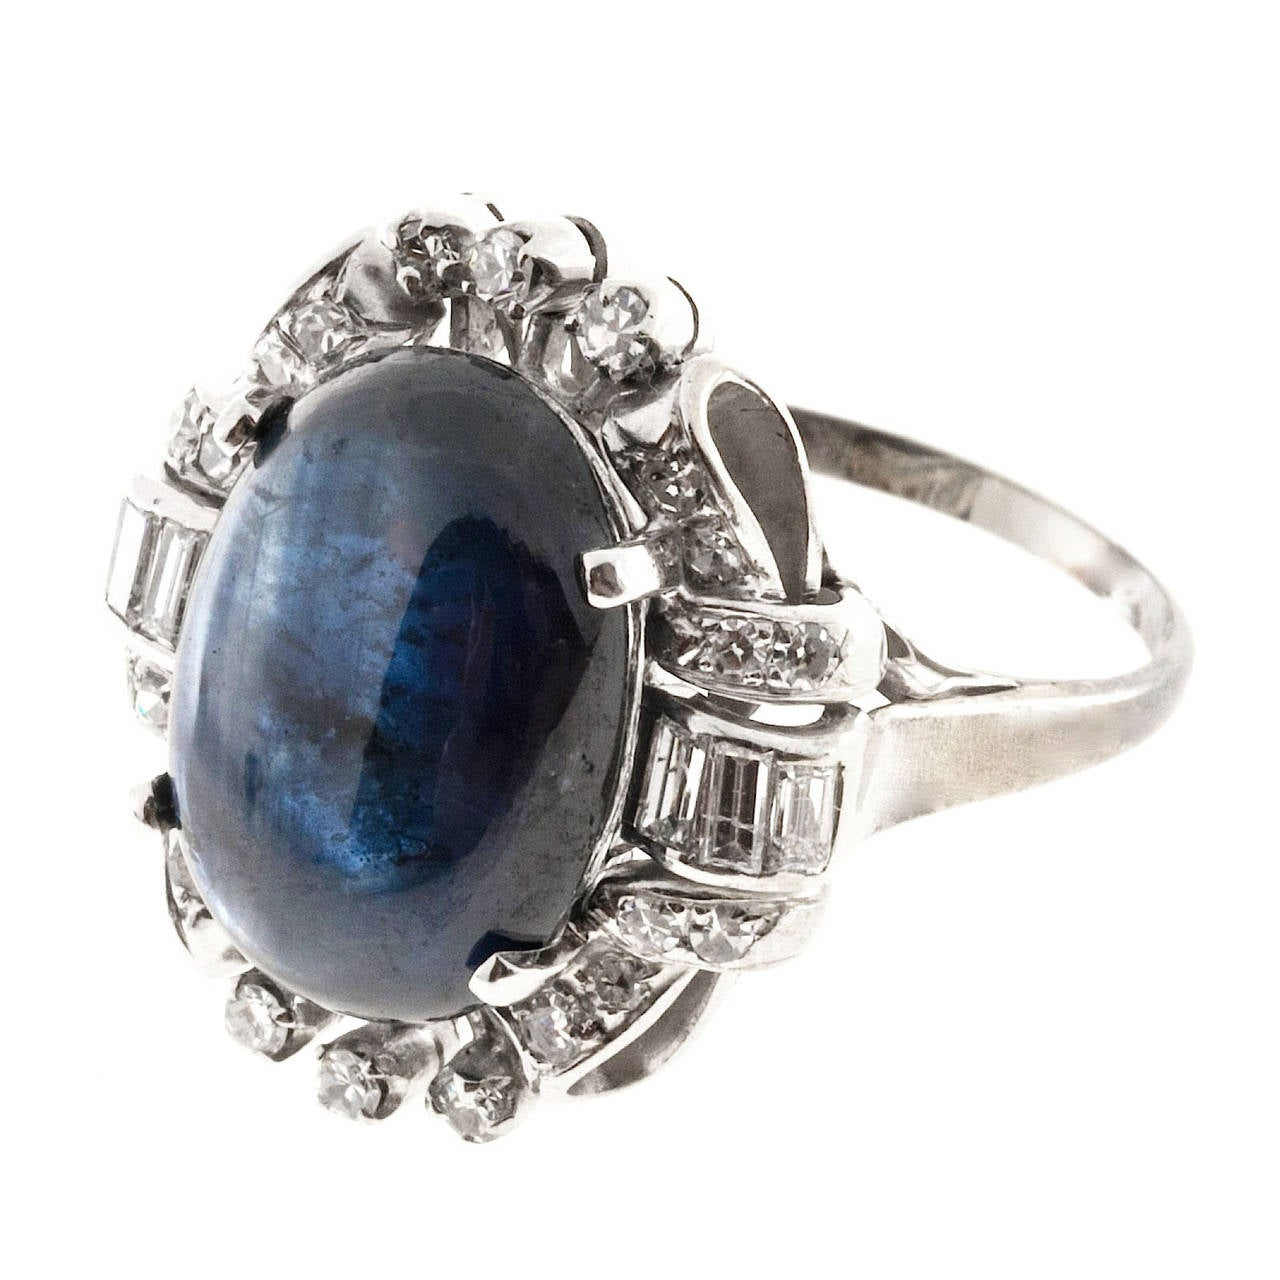 Women's Oval Cabochon Sapphire Diamond Gold Cocktail Ring For Sale